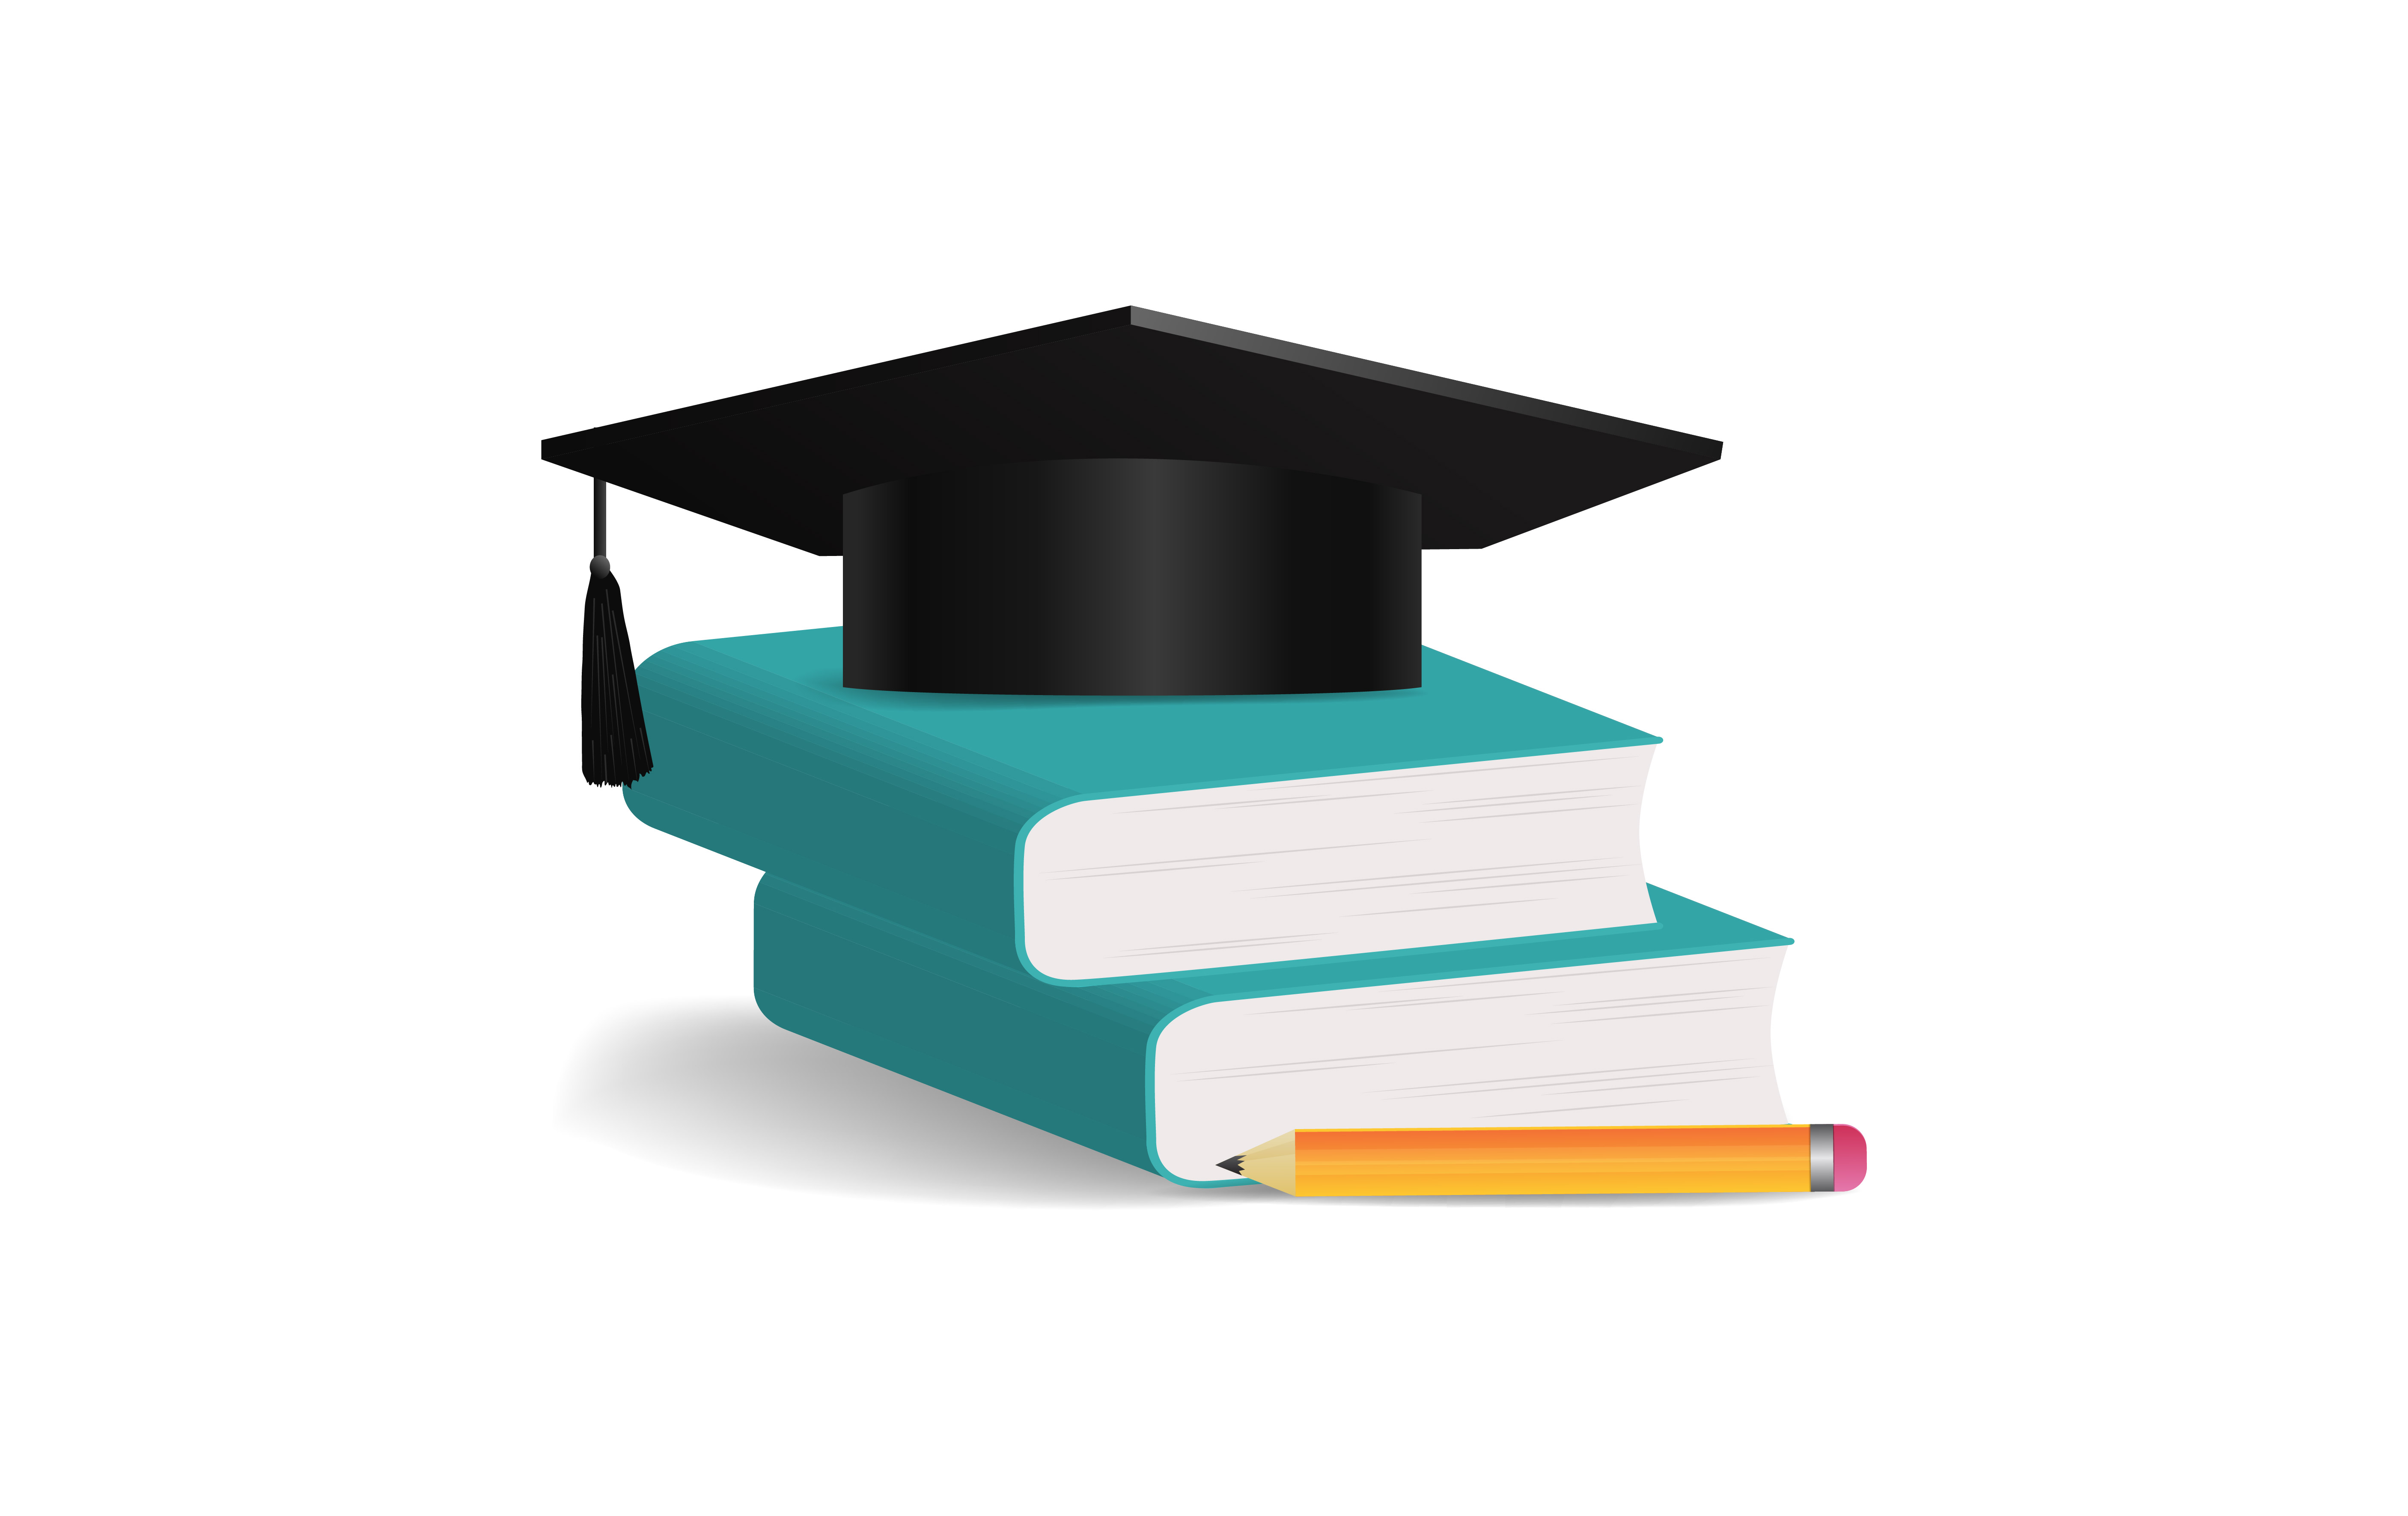 Download Free Graduation Cap With Book Pencil Graphic By Ngabeivector for Cricut Explore, Silhouette and other cutting machines.